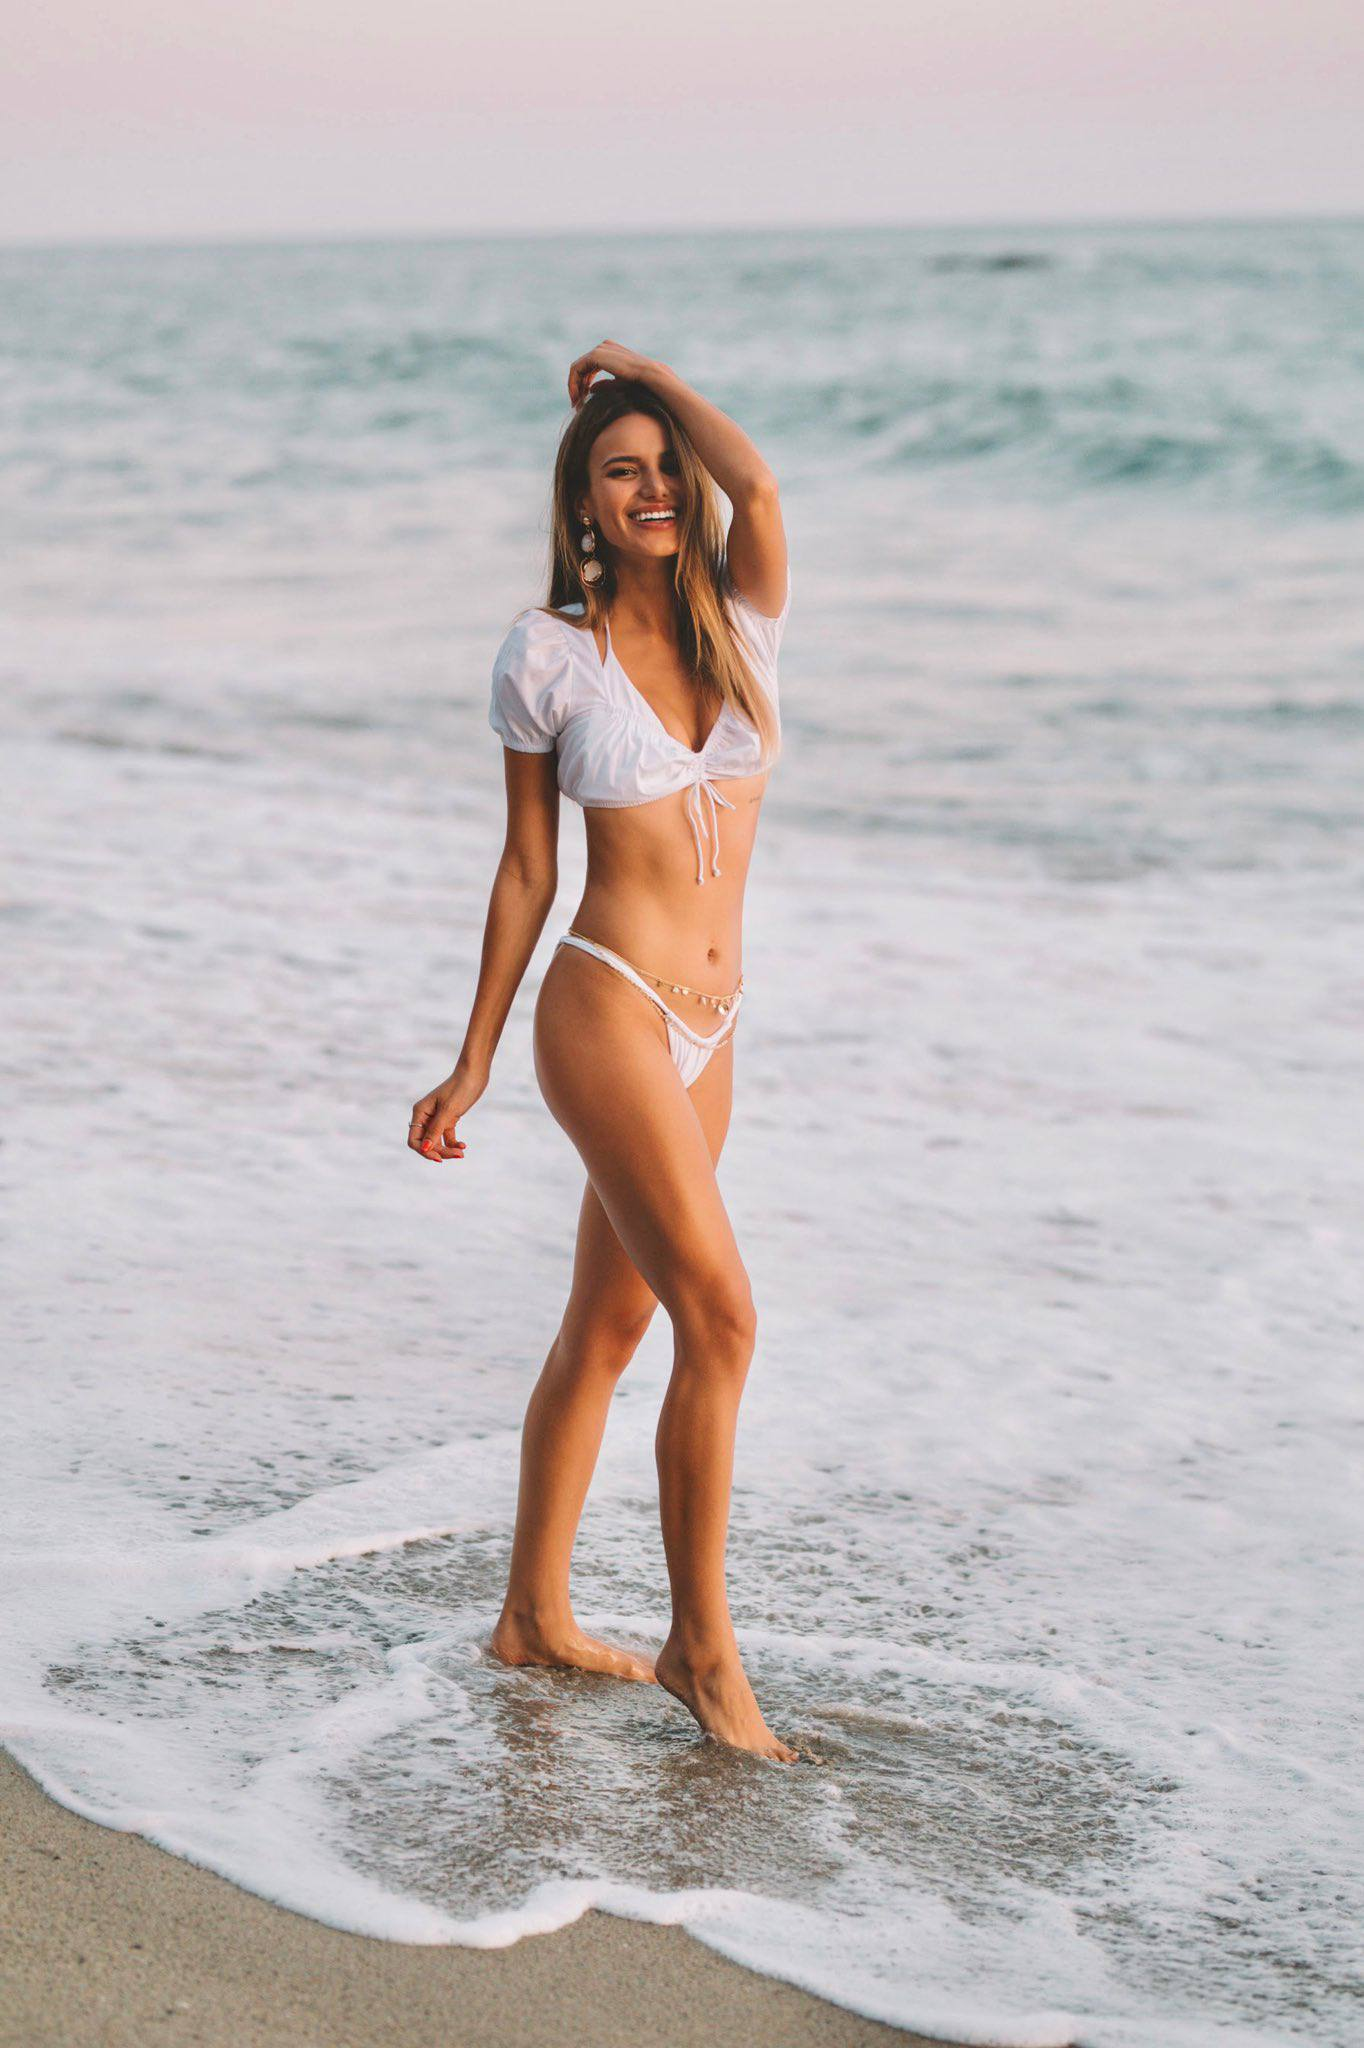 Madison Reed Sexy Body In Beach Photoshoot By Daniel Poplawsky 0001